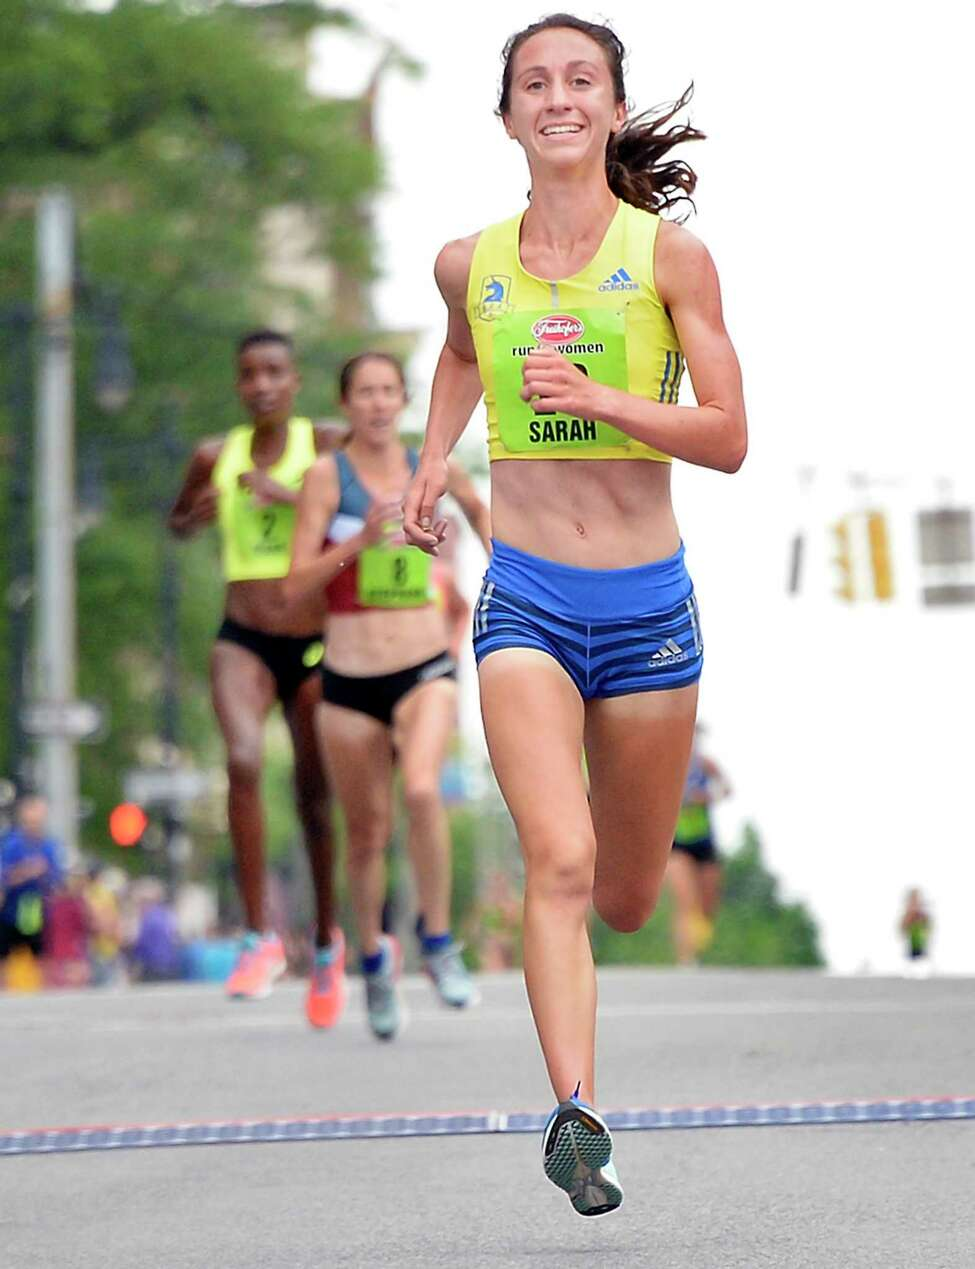 #10 Sarah Pagano of Brighton, Mass., pulls ahead of @2 Diane Nukuri, left, and #8 Stephanie Bruce to win the 40th anniversary of the Freihofer's Run For Women Saturday June 2, 2018 in Albany, NY. (John Carl D'Annibale/Times Union)